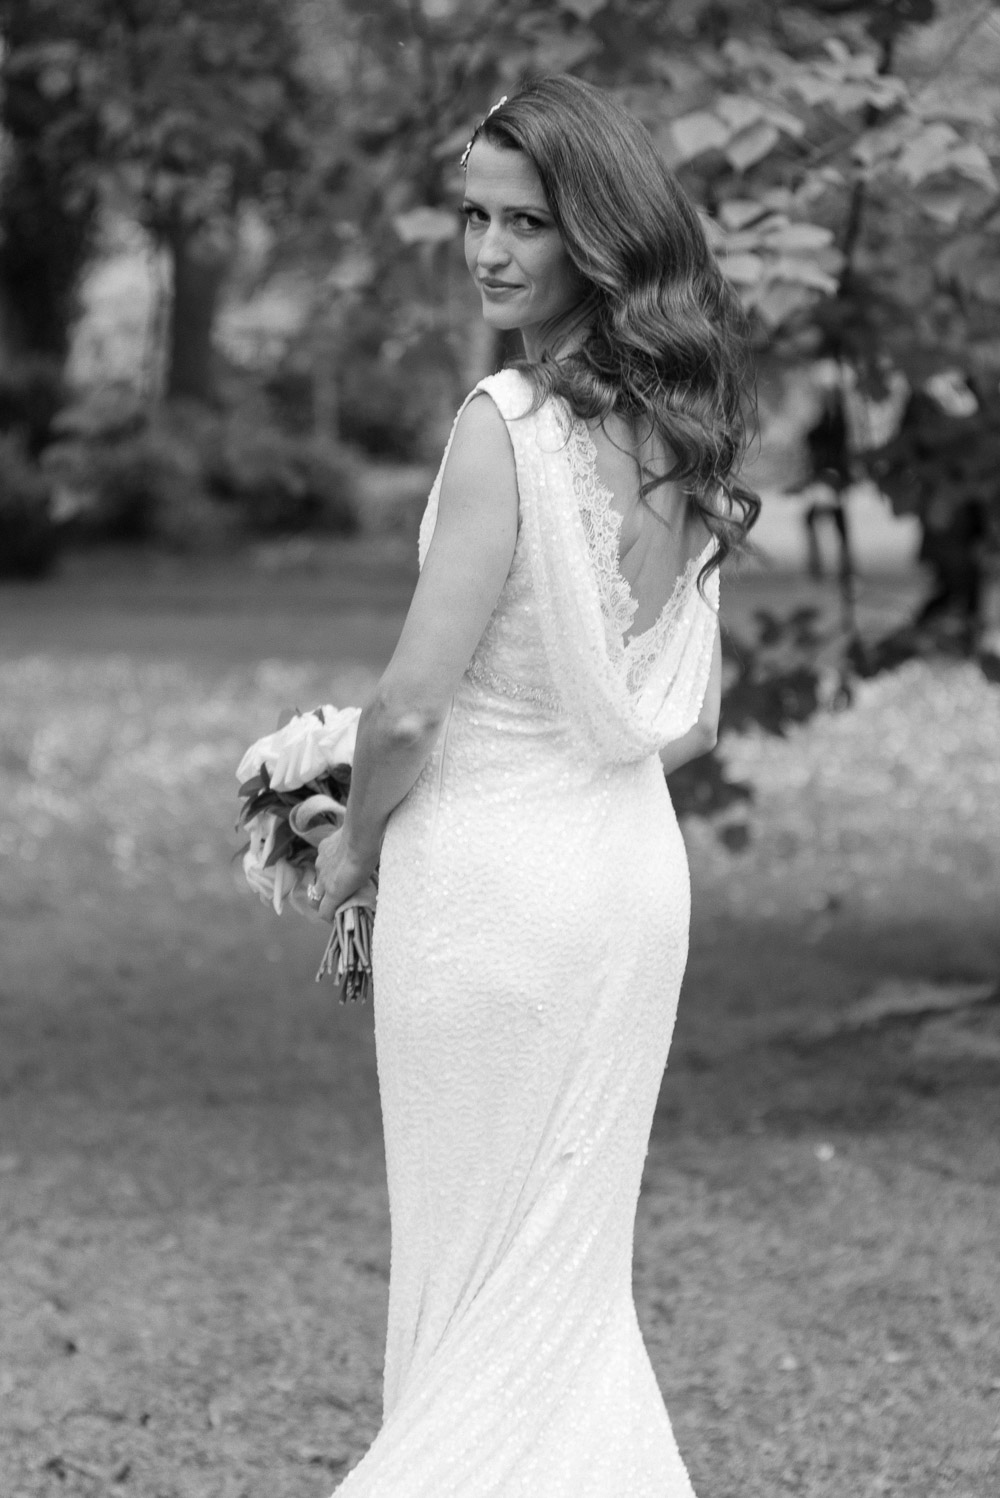 The bride poses for a wedding portrait during her Shelbourne Hotel Wedding